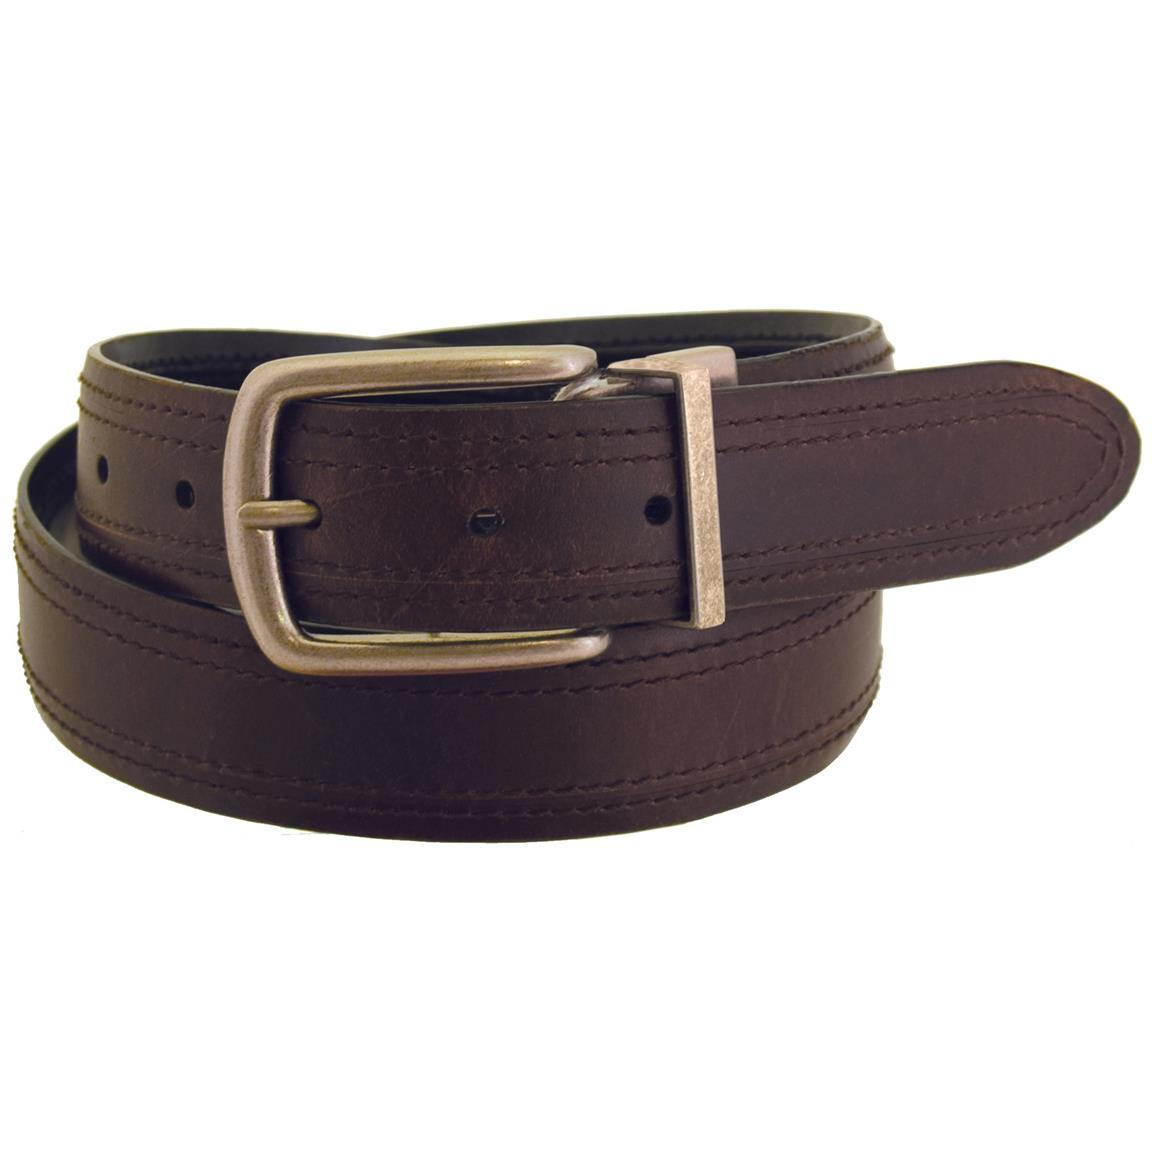 Wrangler Rugged Wear Men's Reversible Leather Belt, Brown